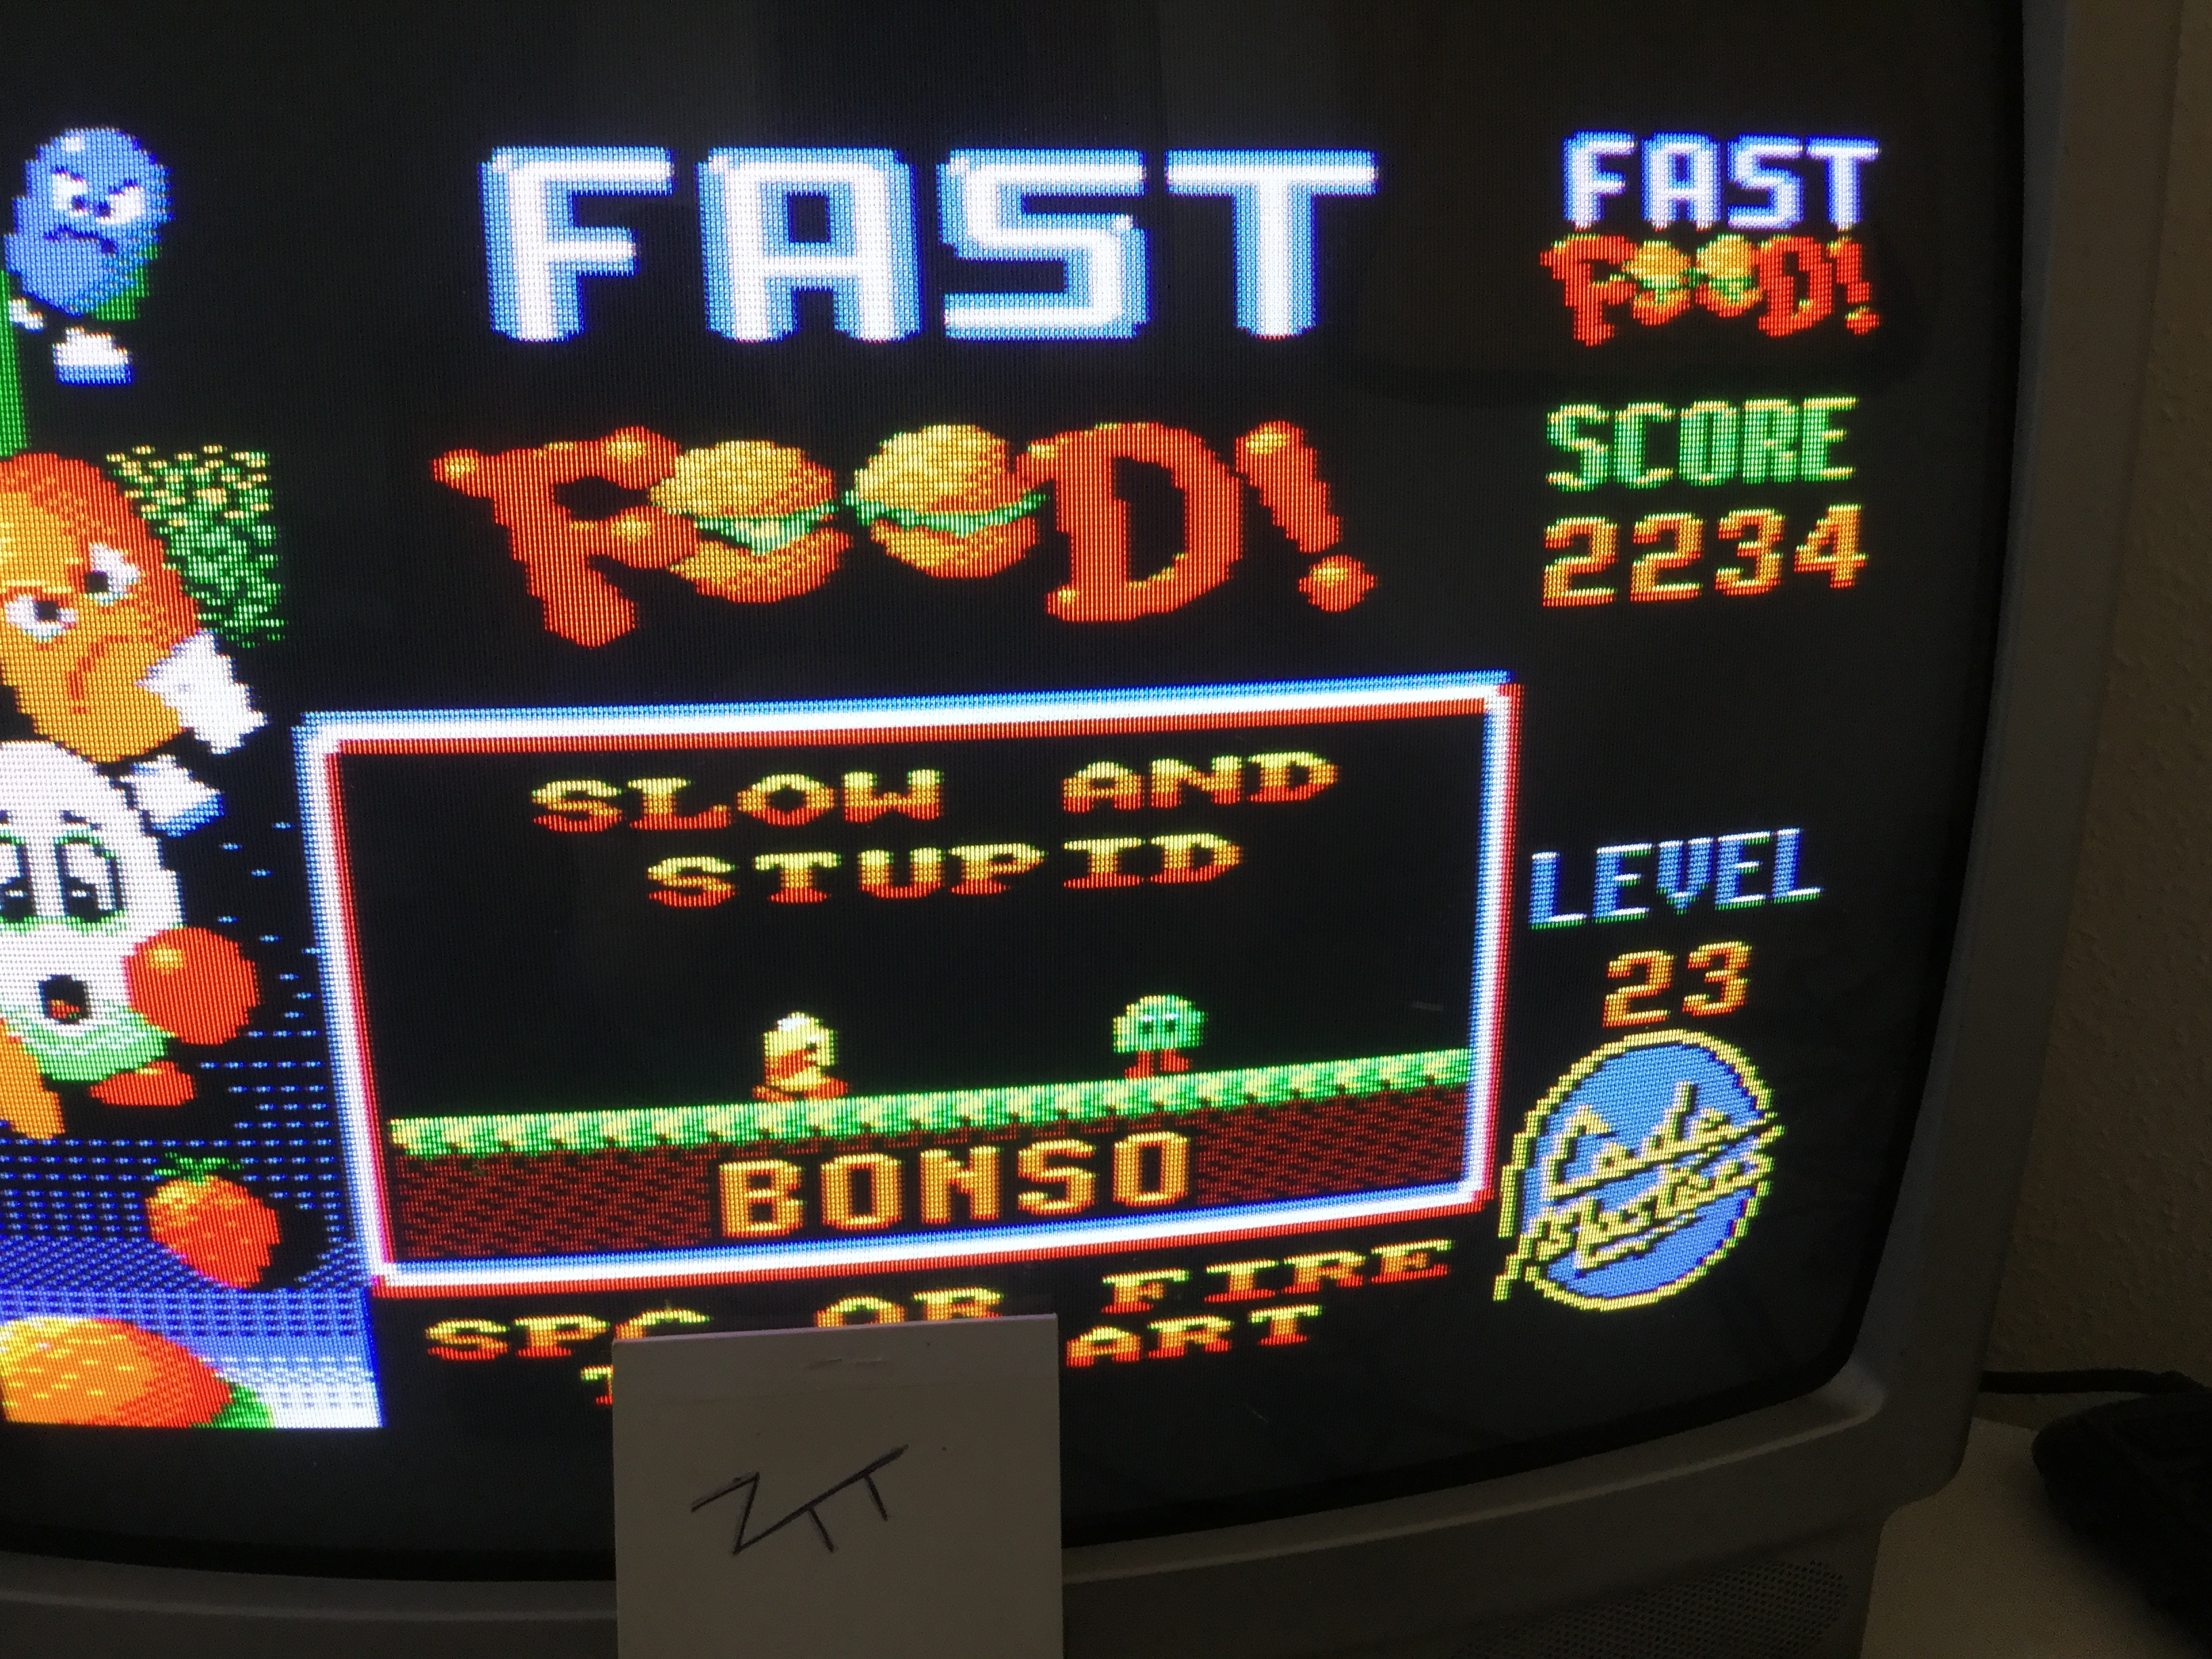 Frankie: Fast Food (Amstrad CPC) 2,234 points on 2017-02-15 06:28:41